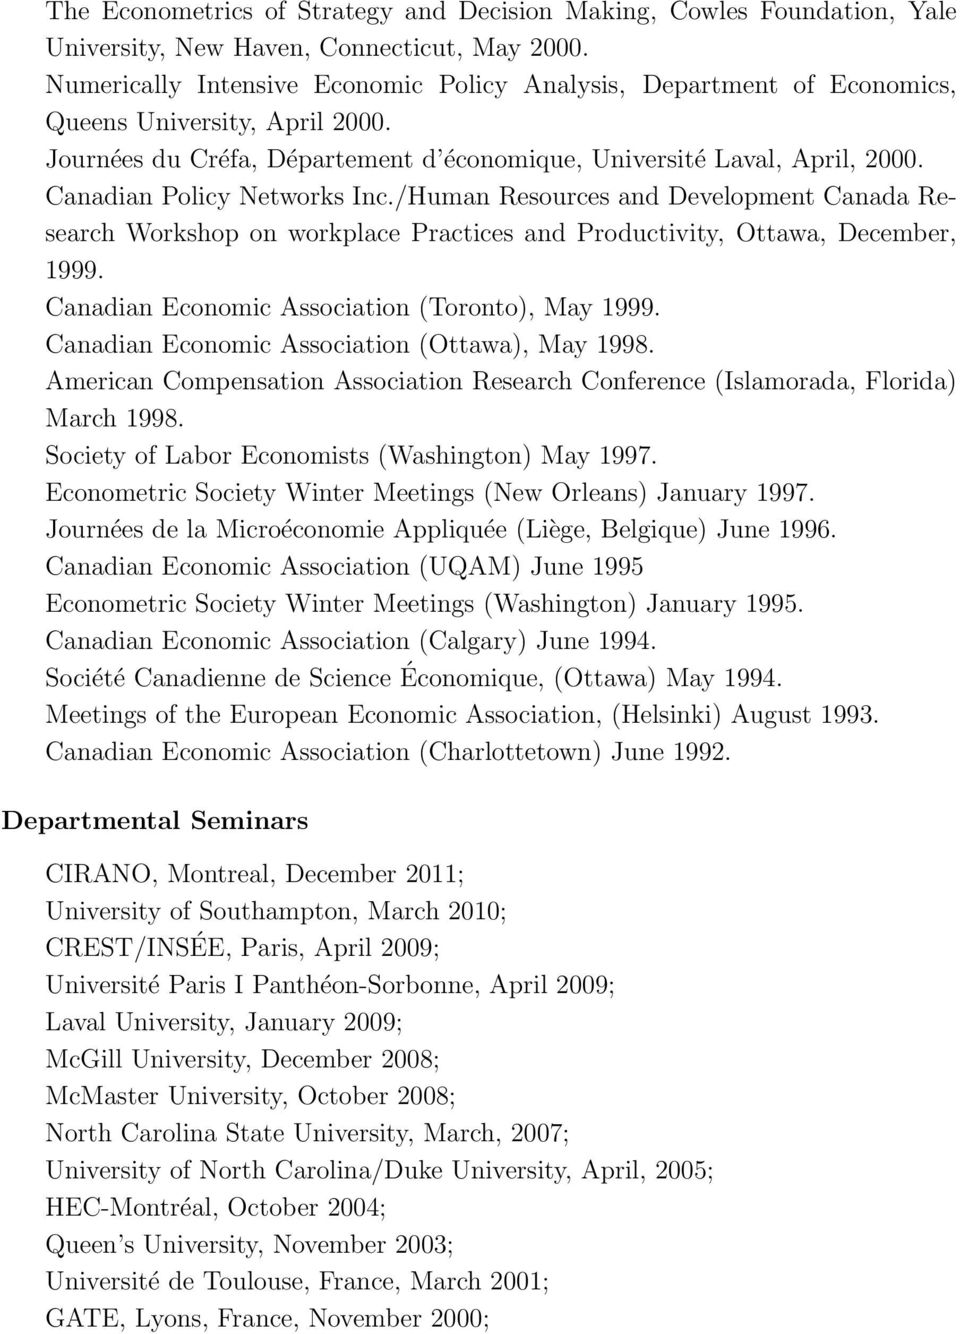 Canadian Policy Networks Inc./Human Resources and Development Canada Research Workshop on workplace Practices and Productivity, Ottawa, December, 1999.